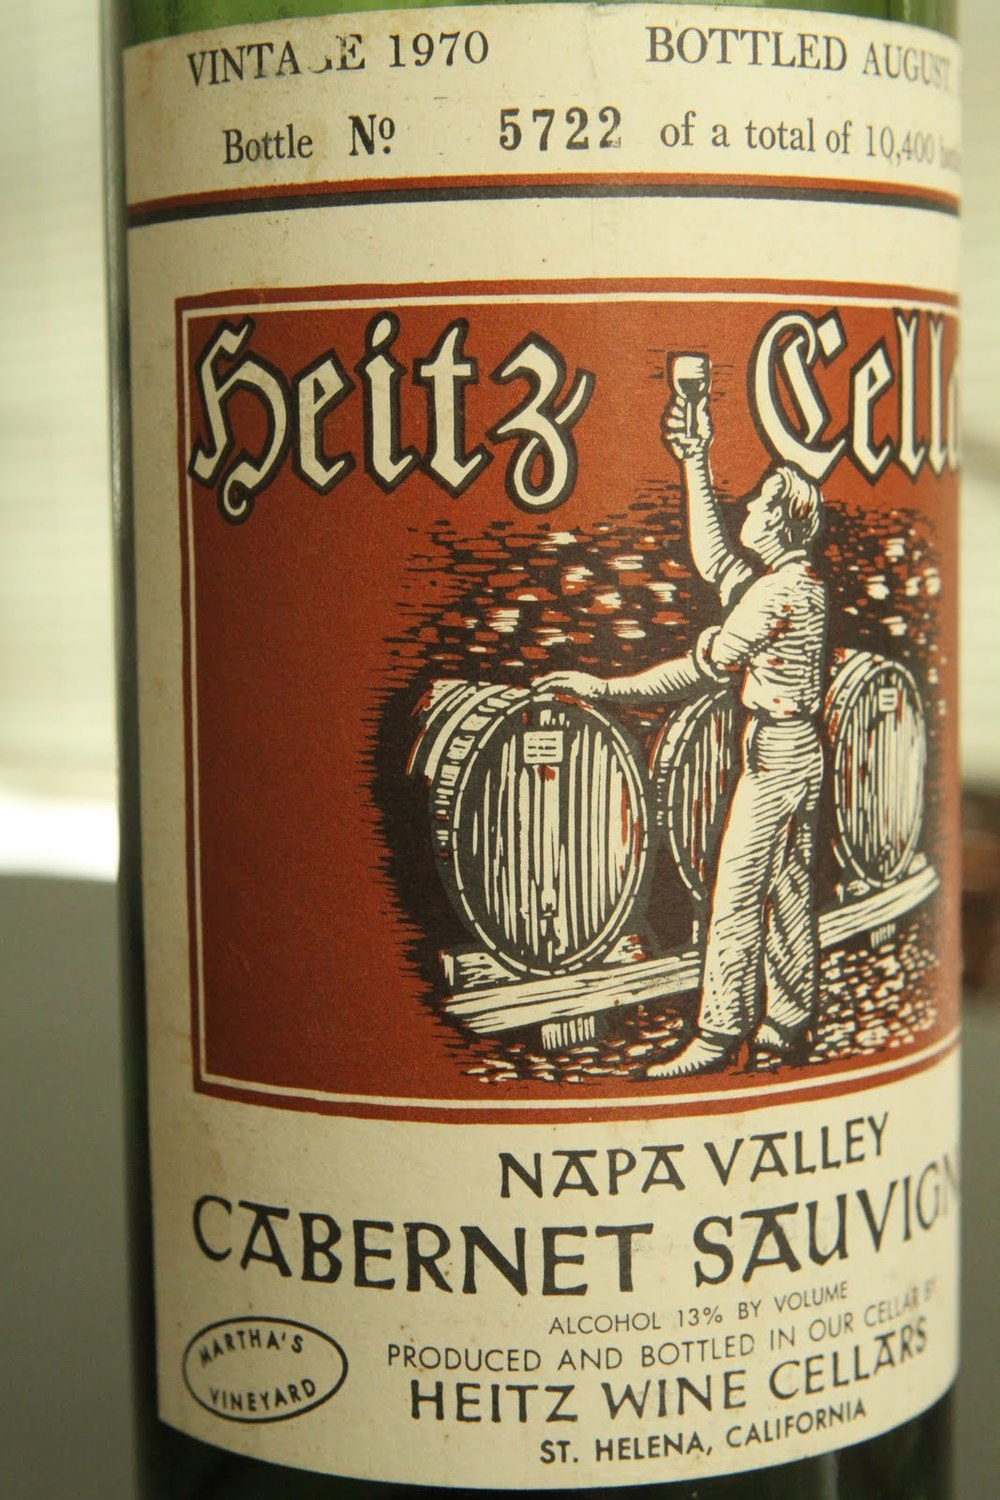 Heitz Cellars legendary 'Martha's Vineyard' Cabernet Sauvignon, one of the ones that put California wines on the map in the 70s.